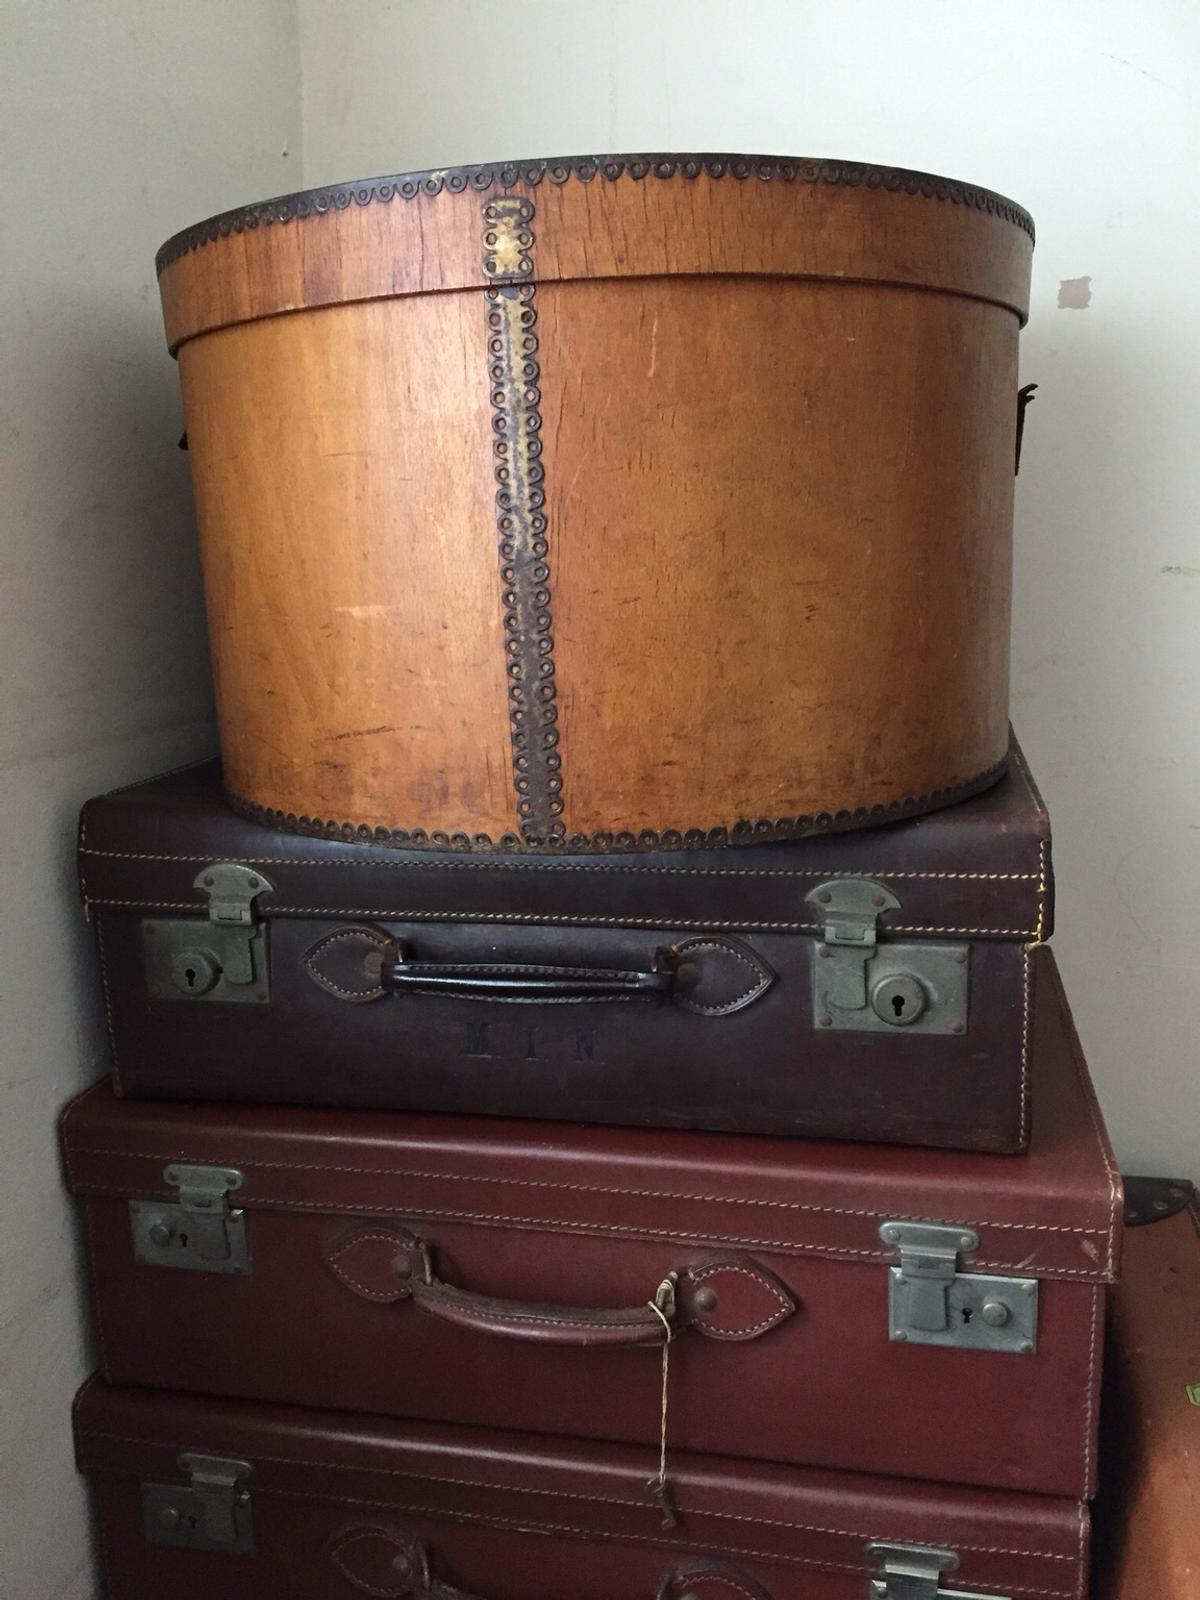 This is a great old hat box  Don't see many of these around  Had it in my collection and display  Curved wooden box with brass fretting  The old leather strap has broken but cant see when on display  Great for display or storage  Width: 18 inches Height: 11 inches